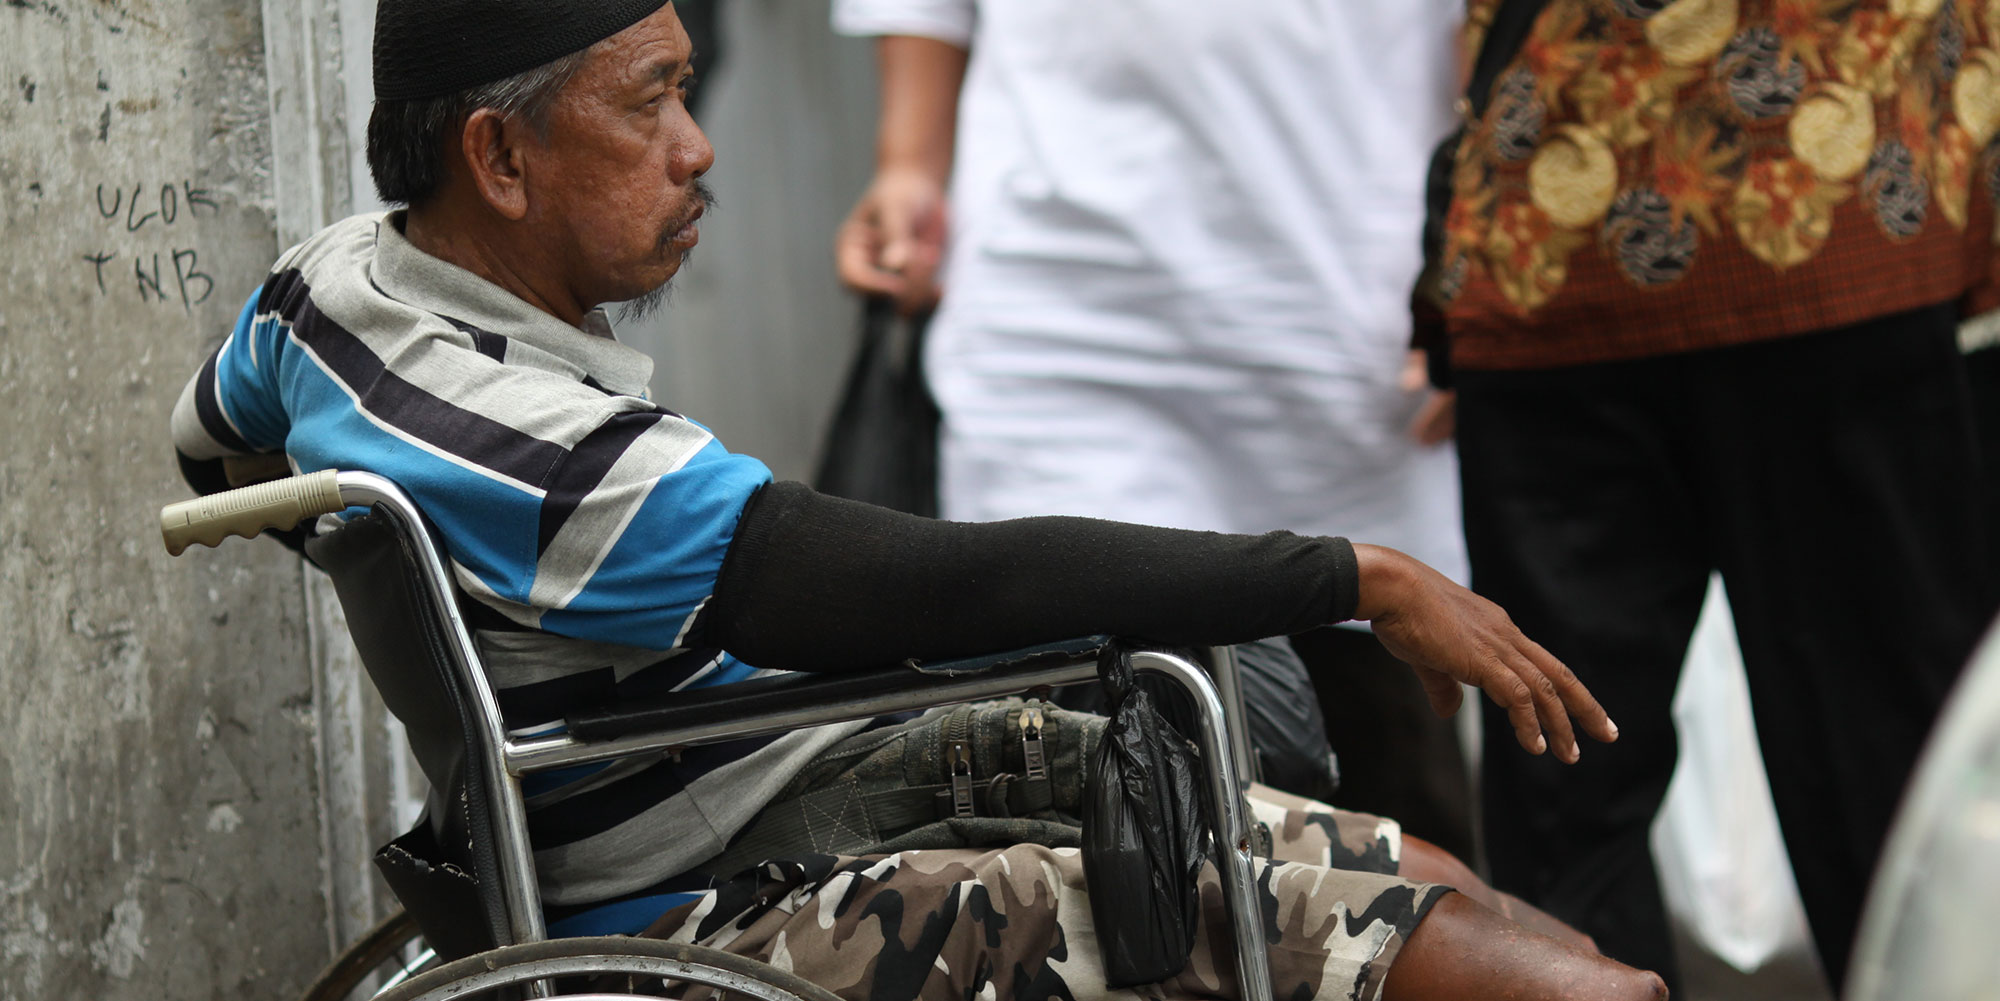 Millions of people with disabilities missing out on essential support in Indonesia